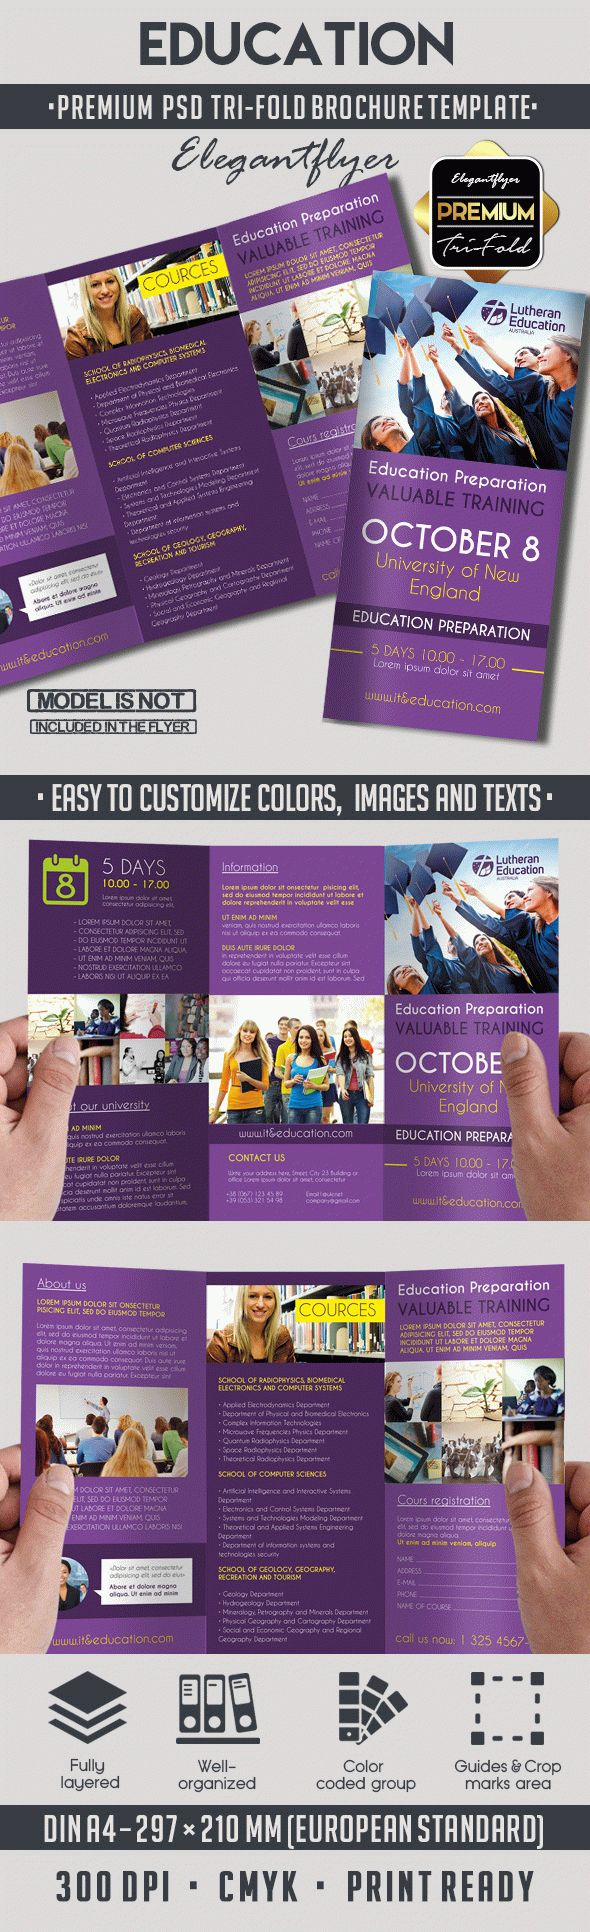 Education – Premium Tri-Fold PSD Brochure Template